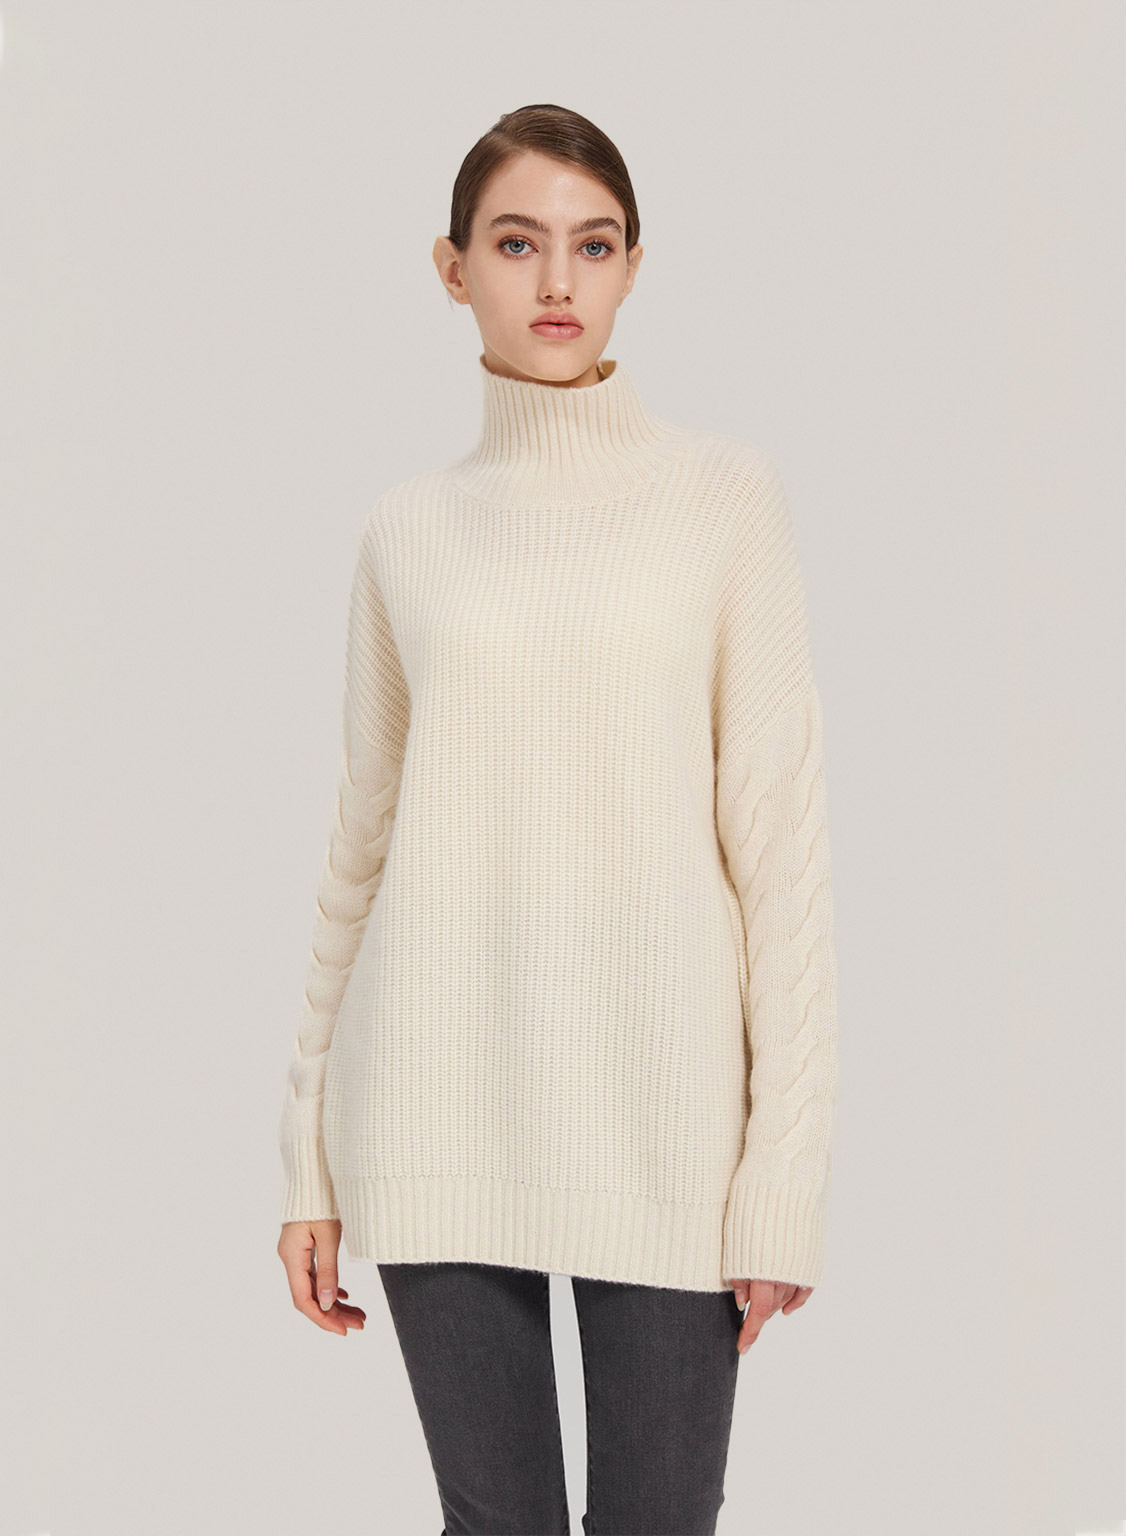 This sweater features a high neck, oversized fit, and cable-knit sleeve detailing. Definitely a must